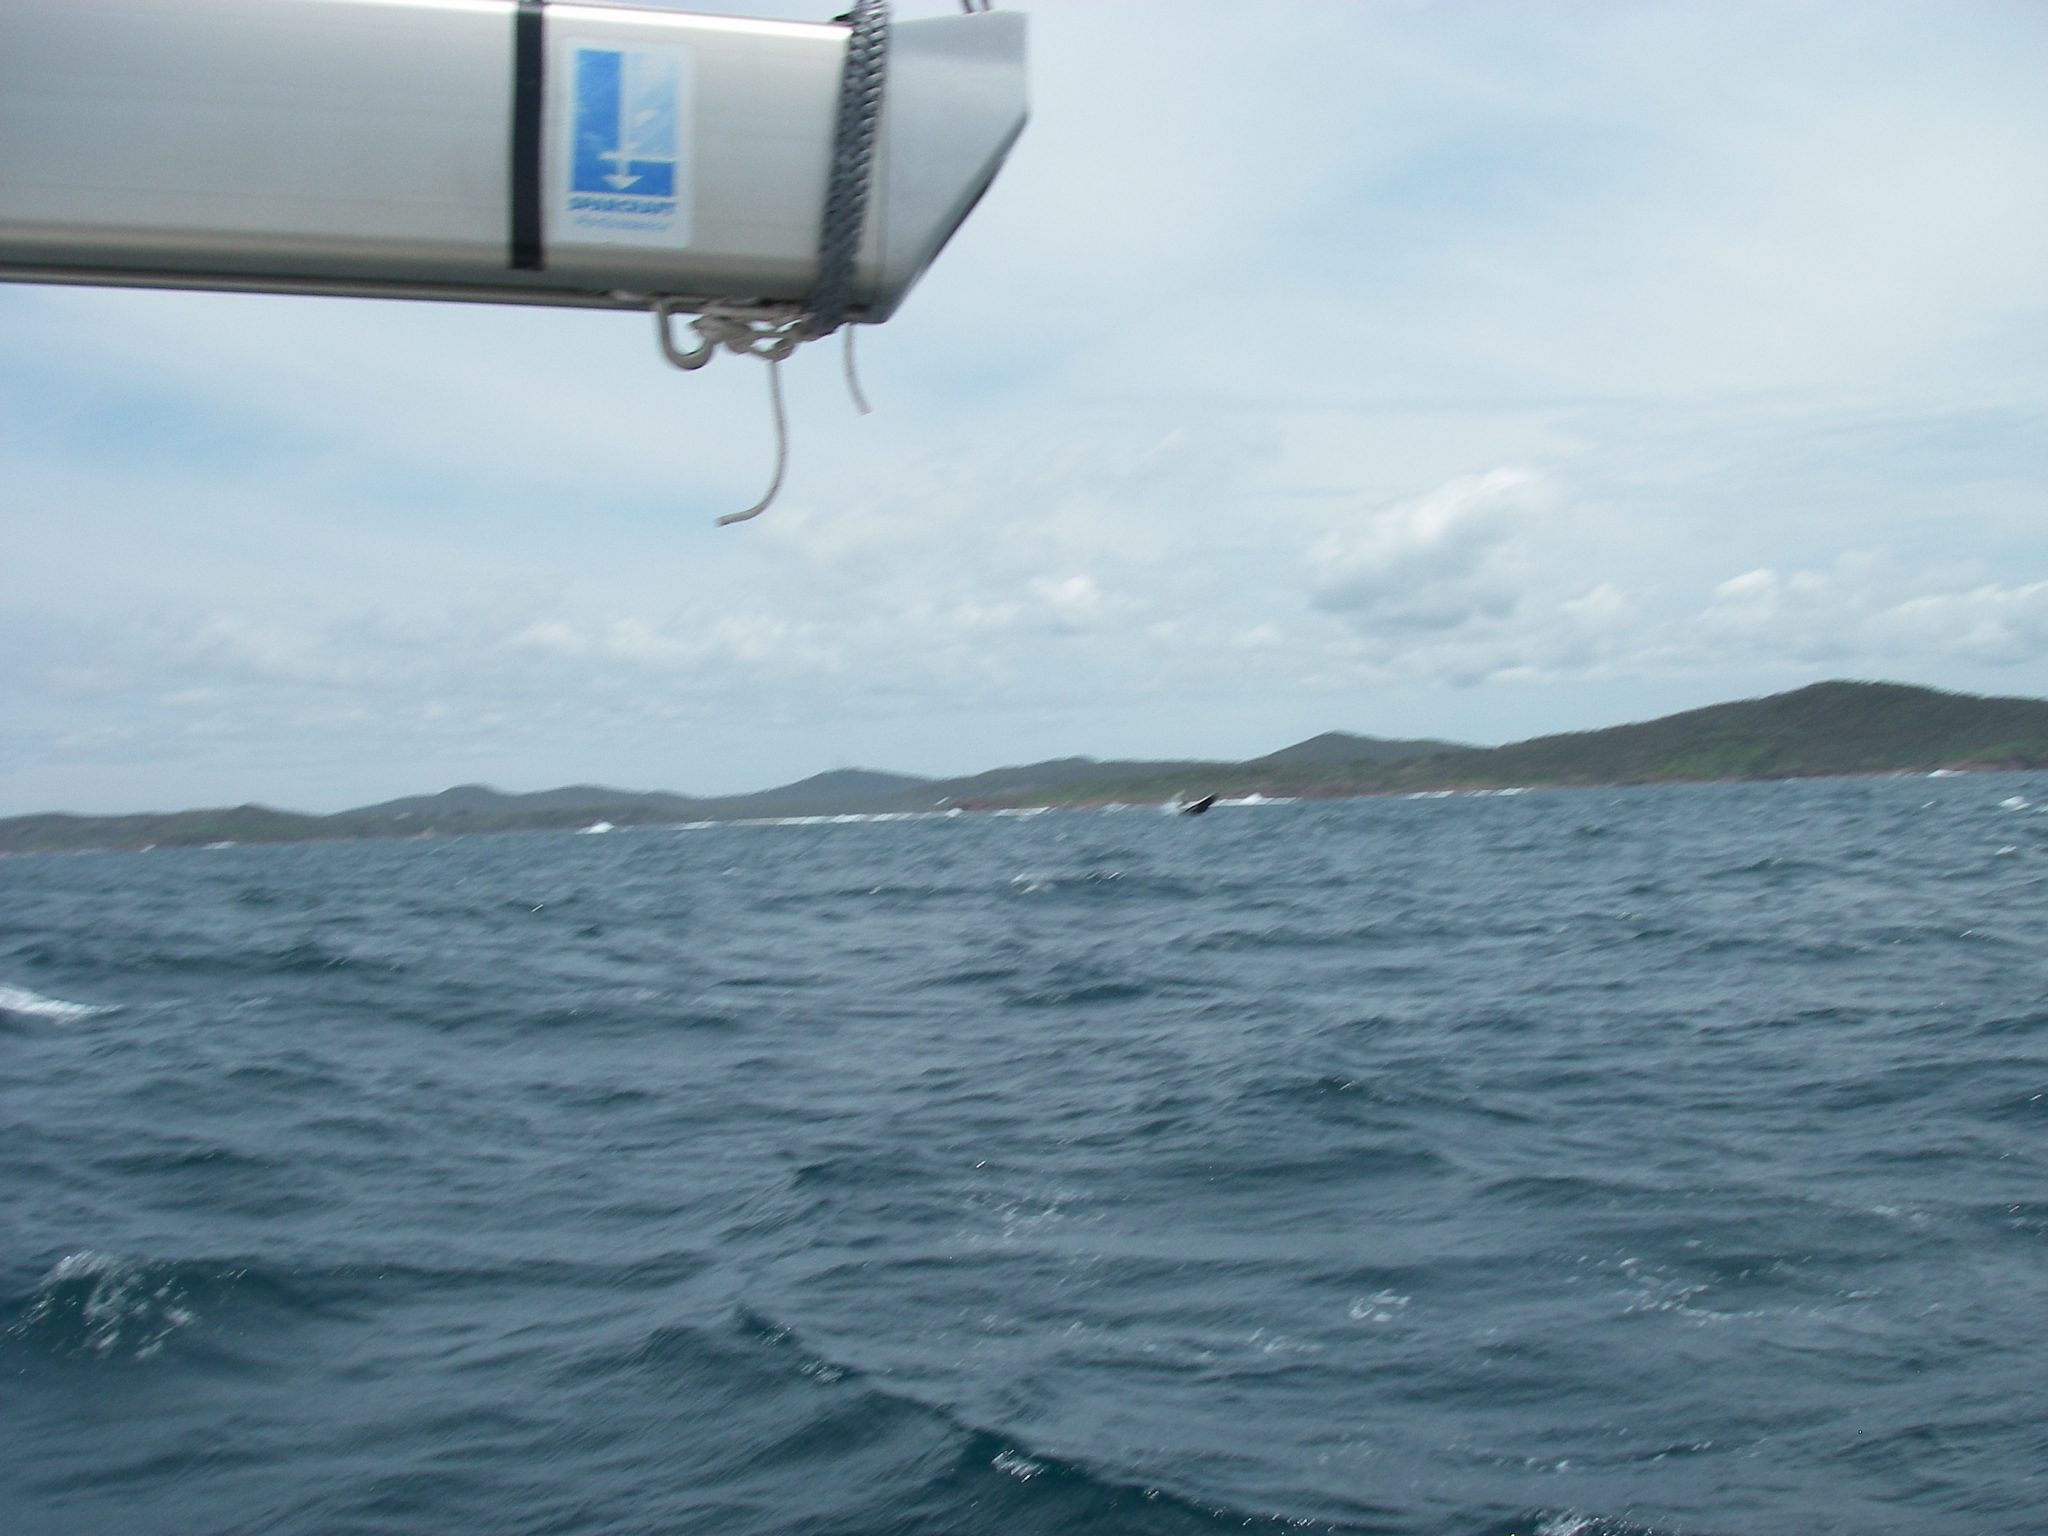 52. We saw humpback whales in the water. This one is broaching!